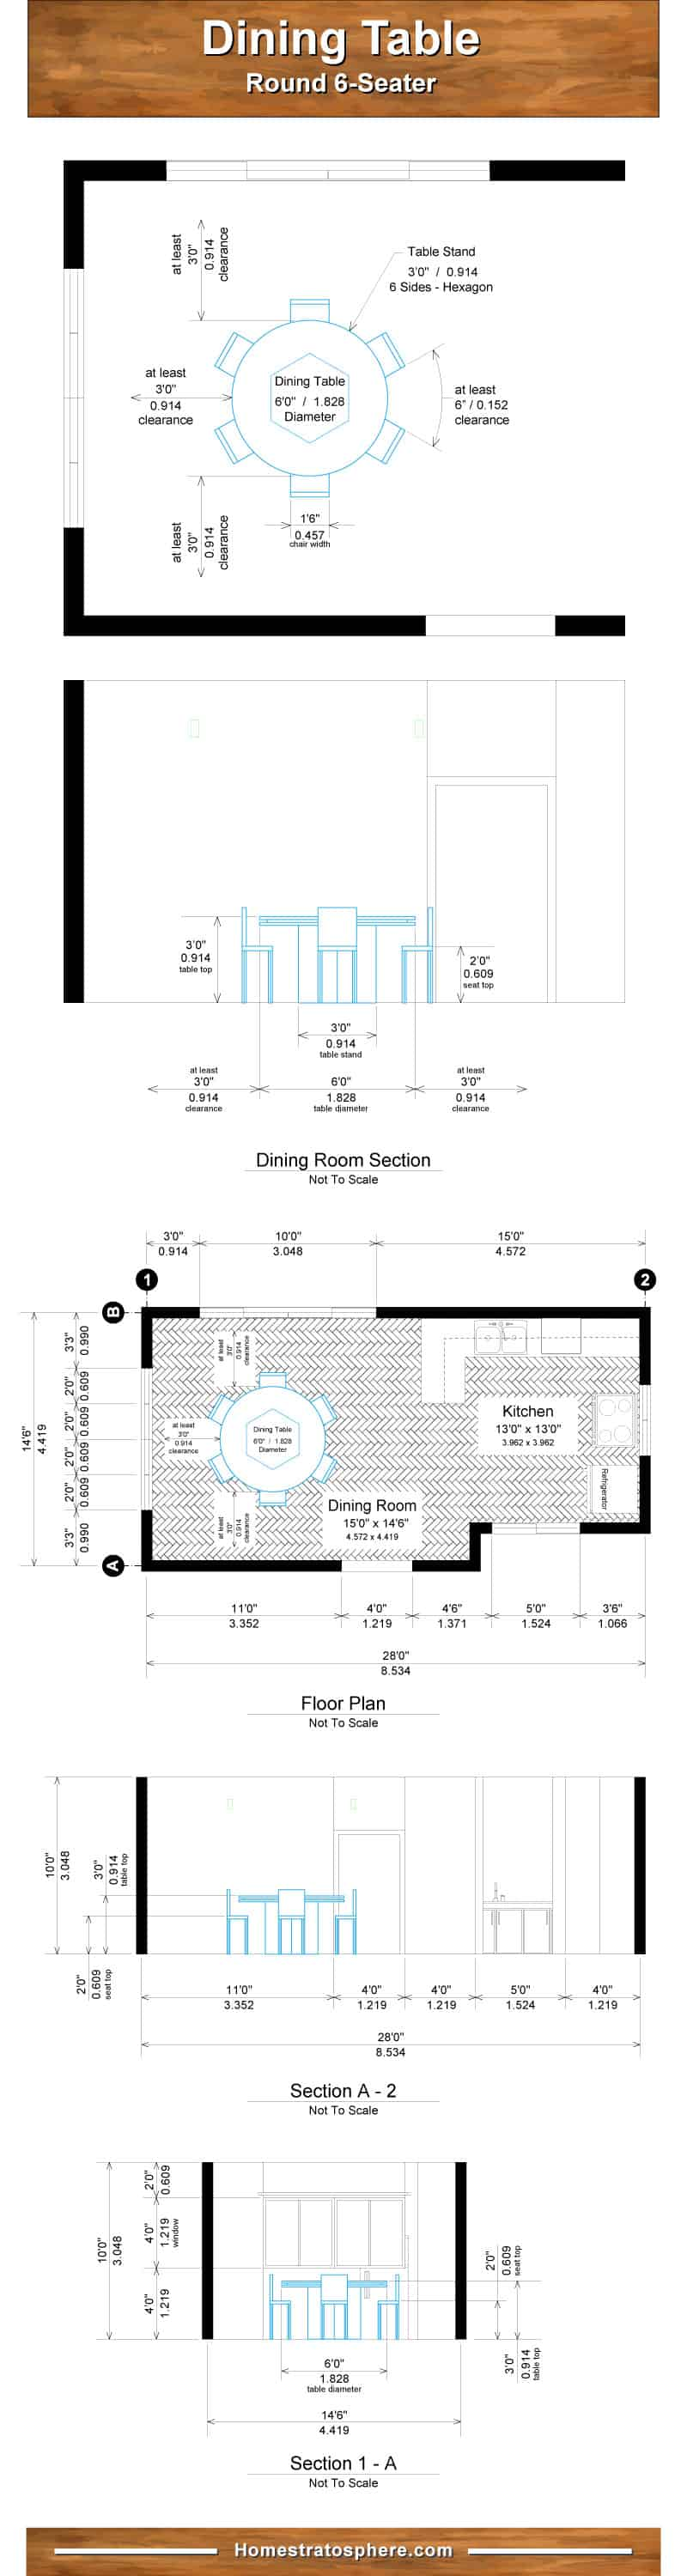 Rounding dining table dimensions chart for 6 people